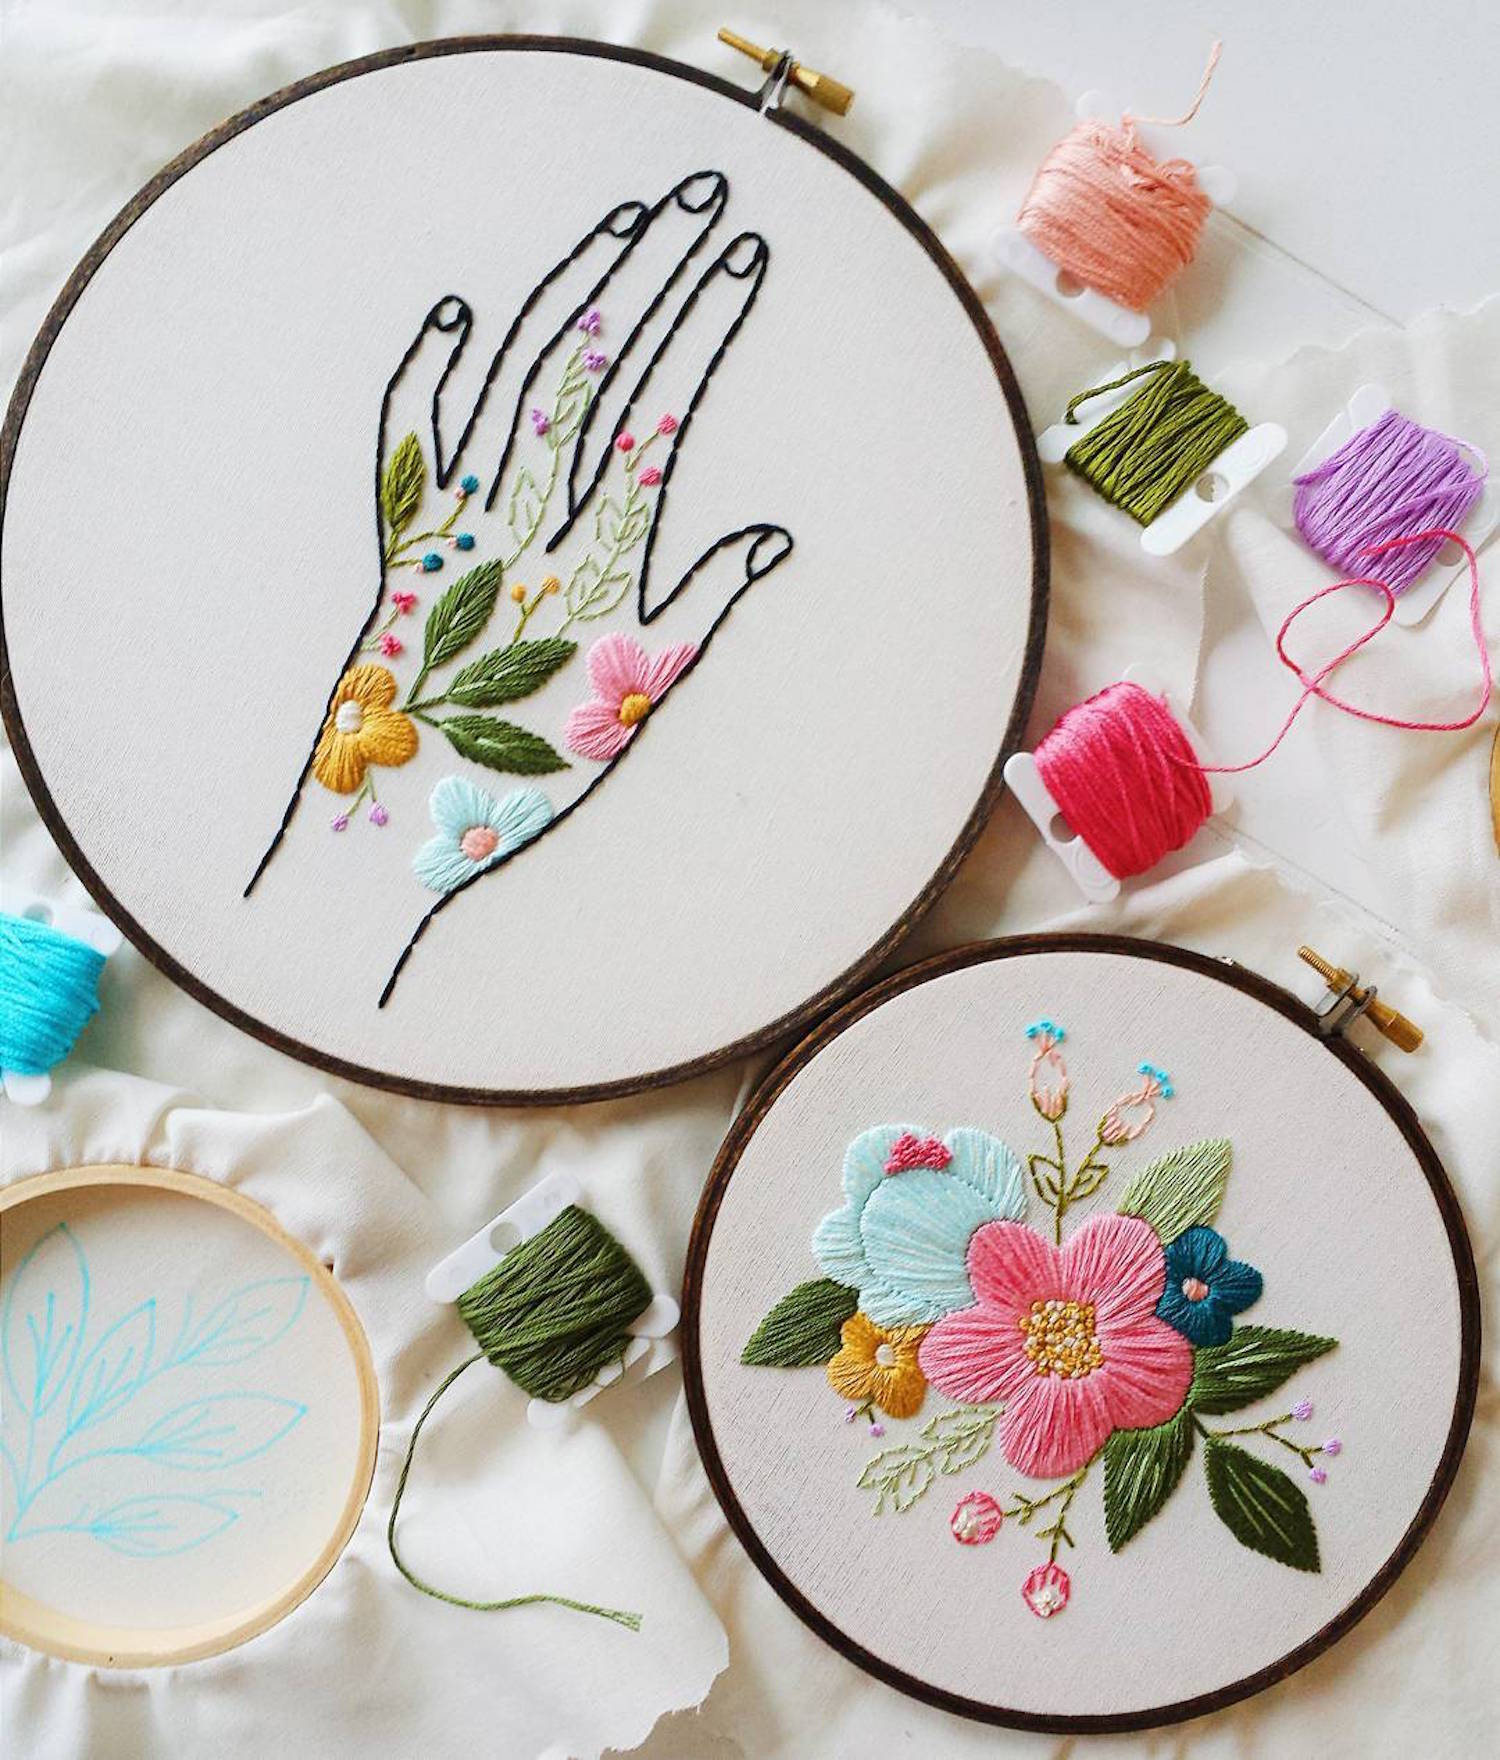 Embroidery by Cinder & Honey